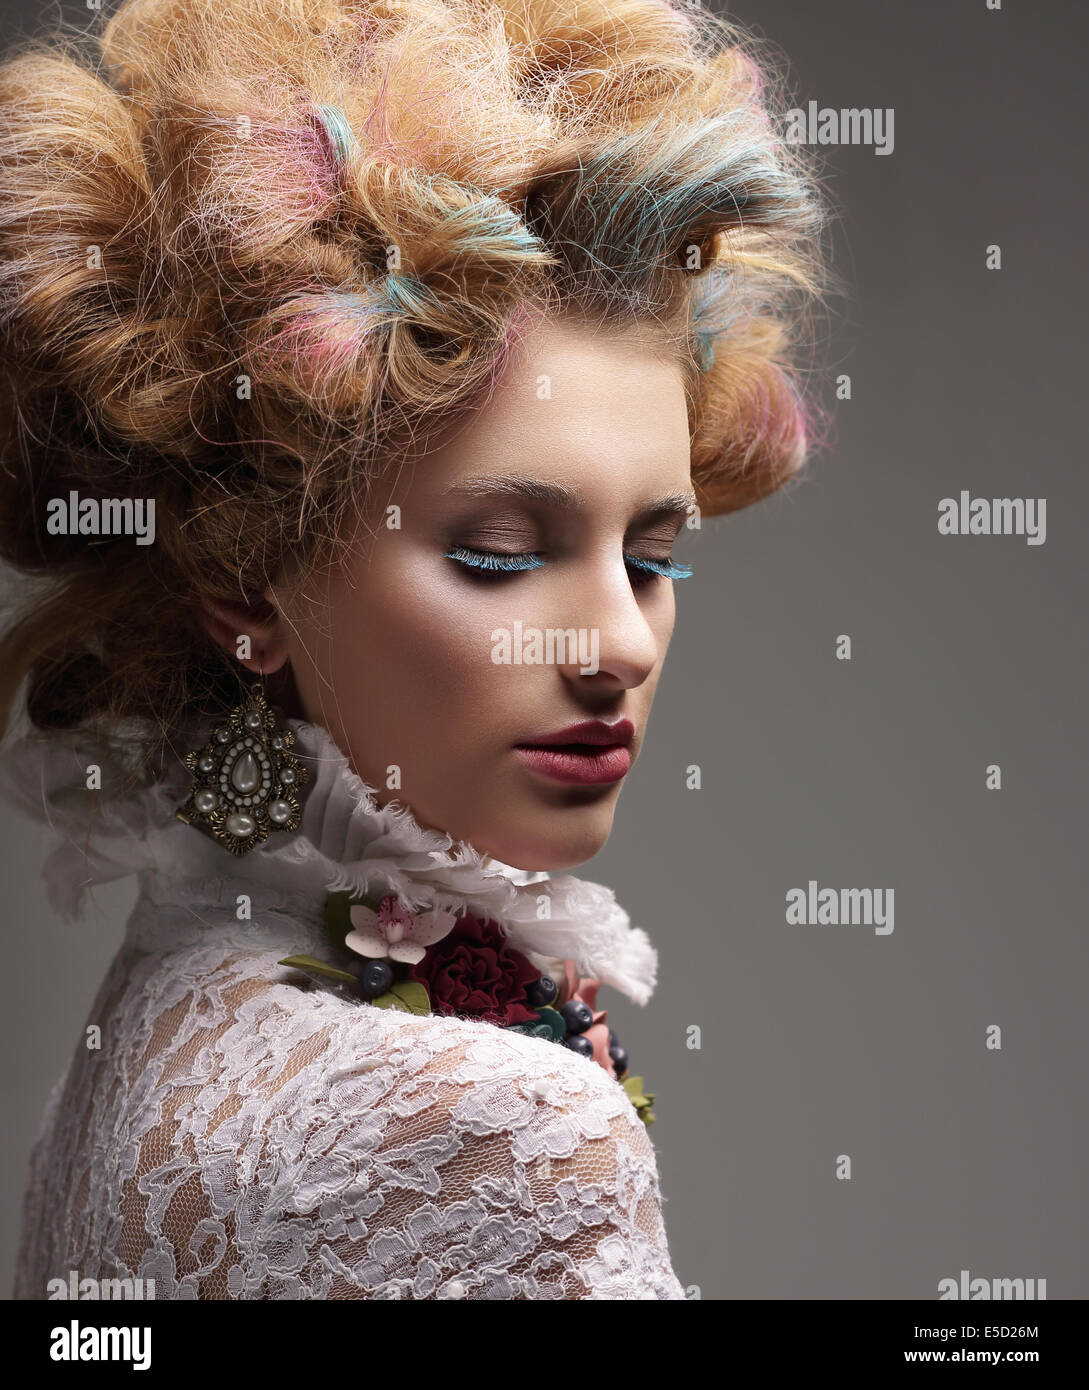 Inspiration. Fashion Model with Colorful Dyed Hair - Stock Image